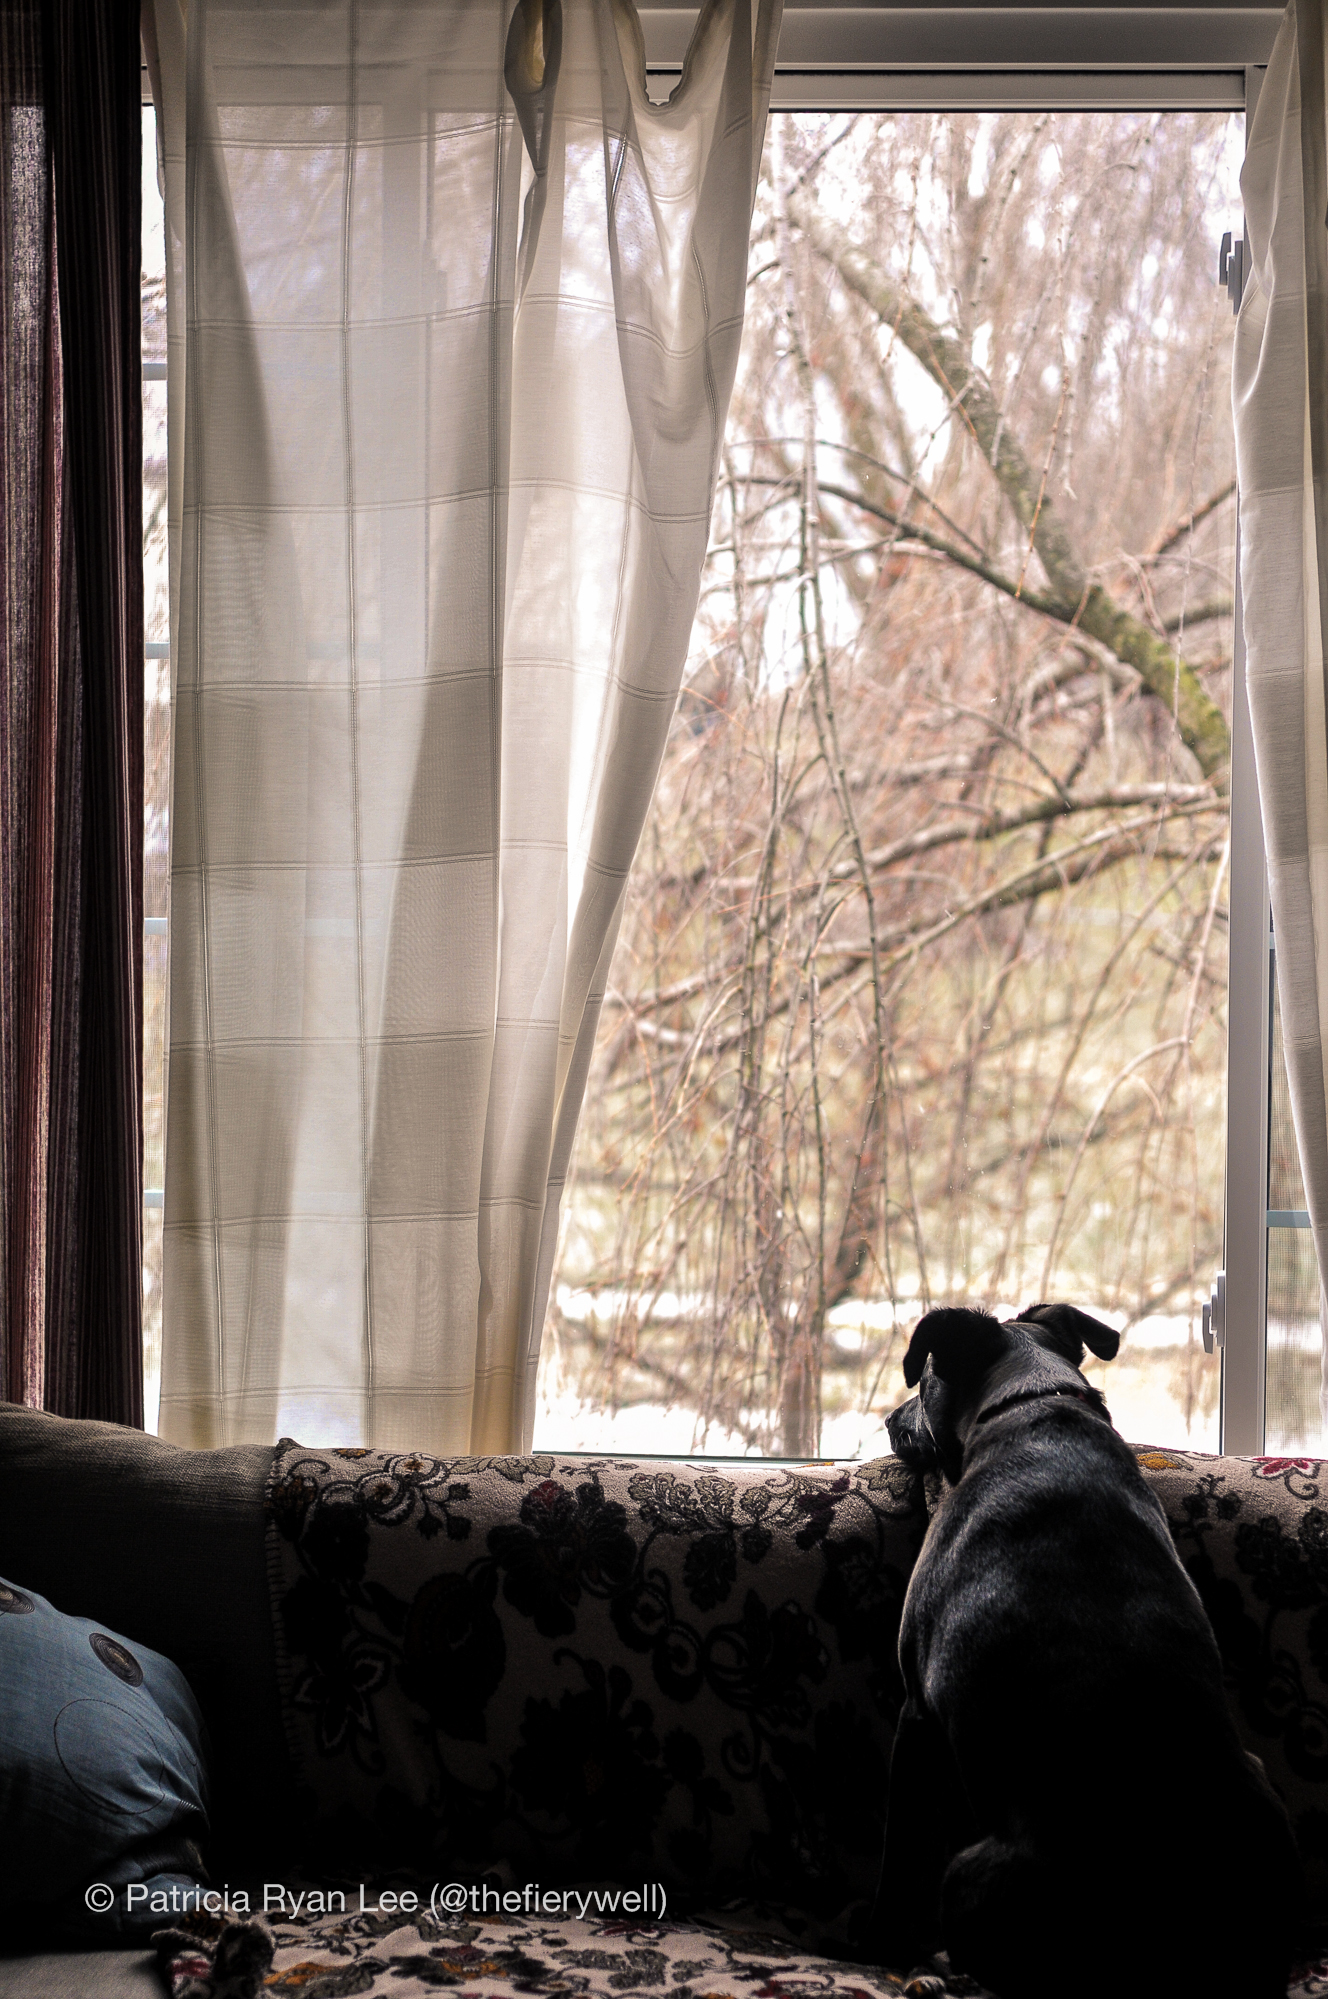 A black lab looks longingly out the window.